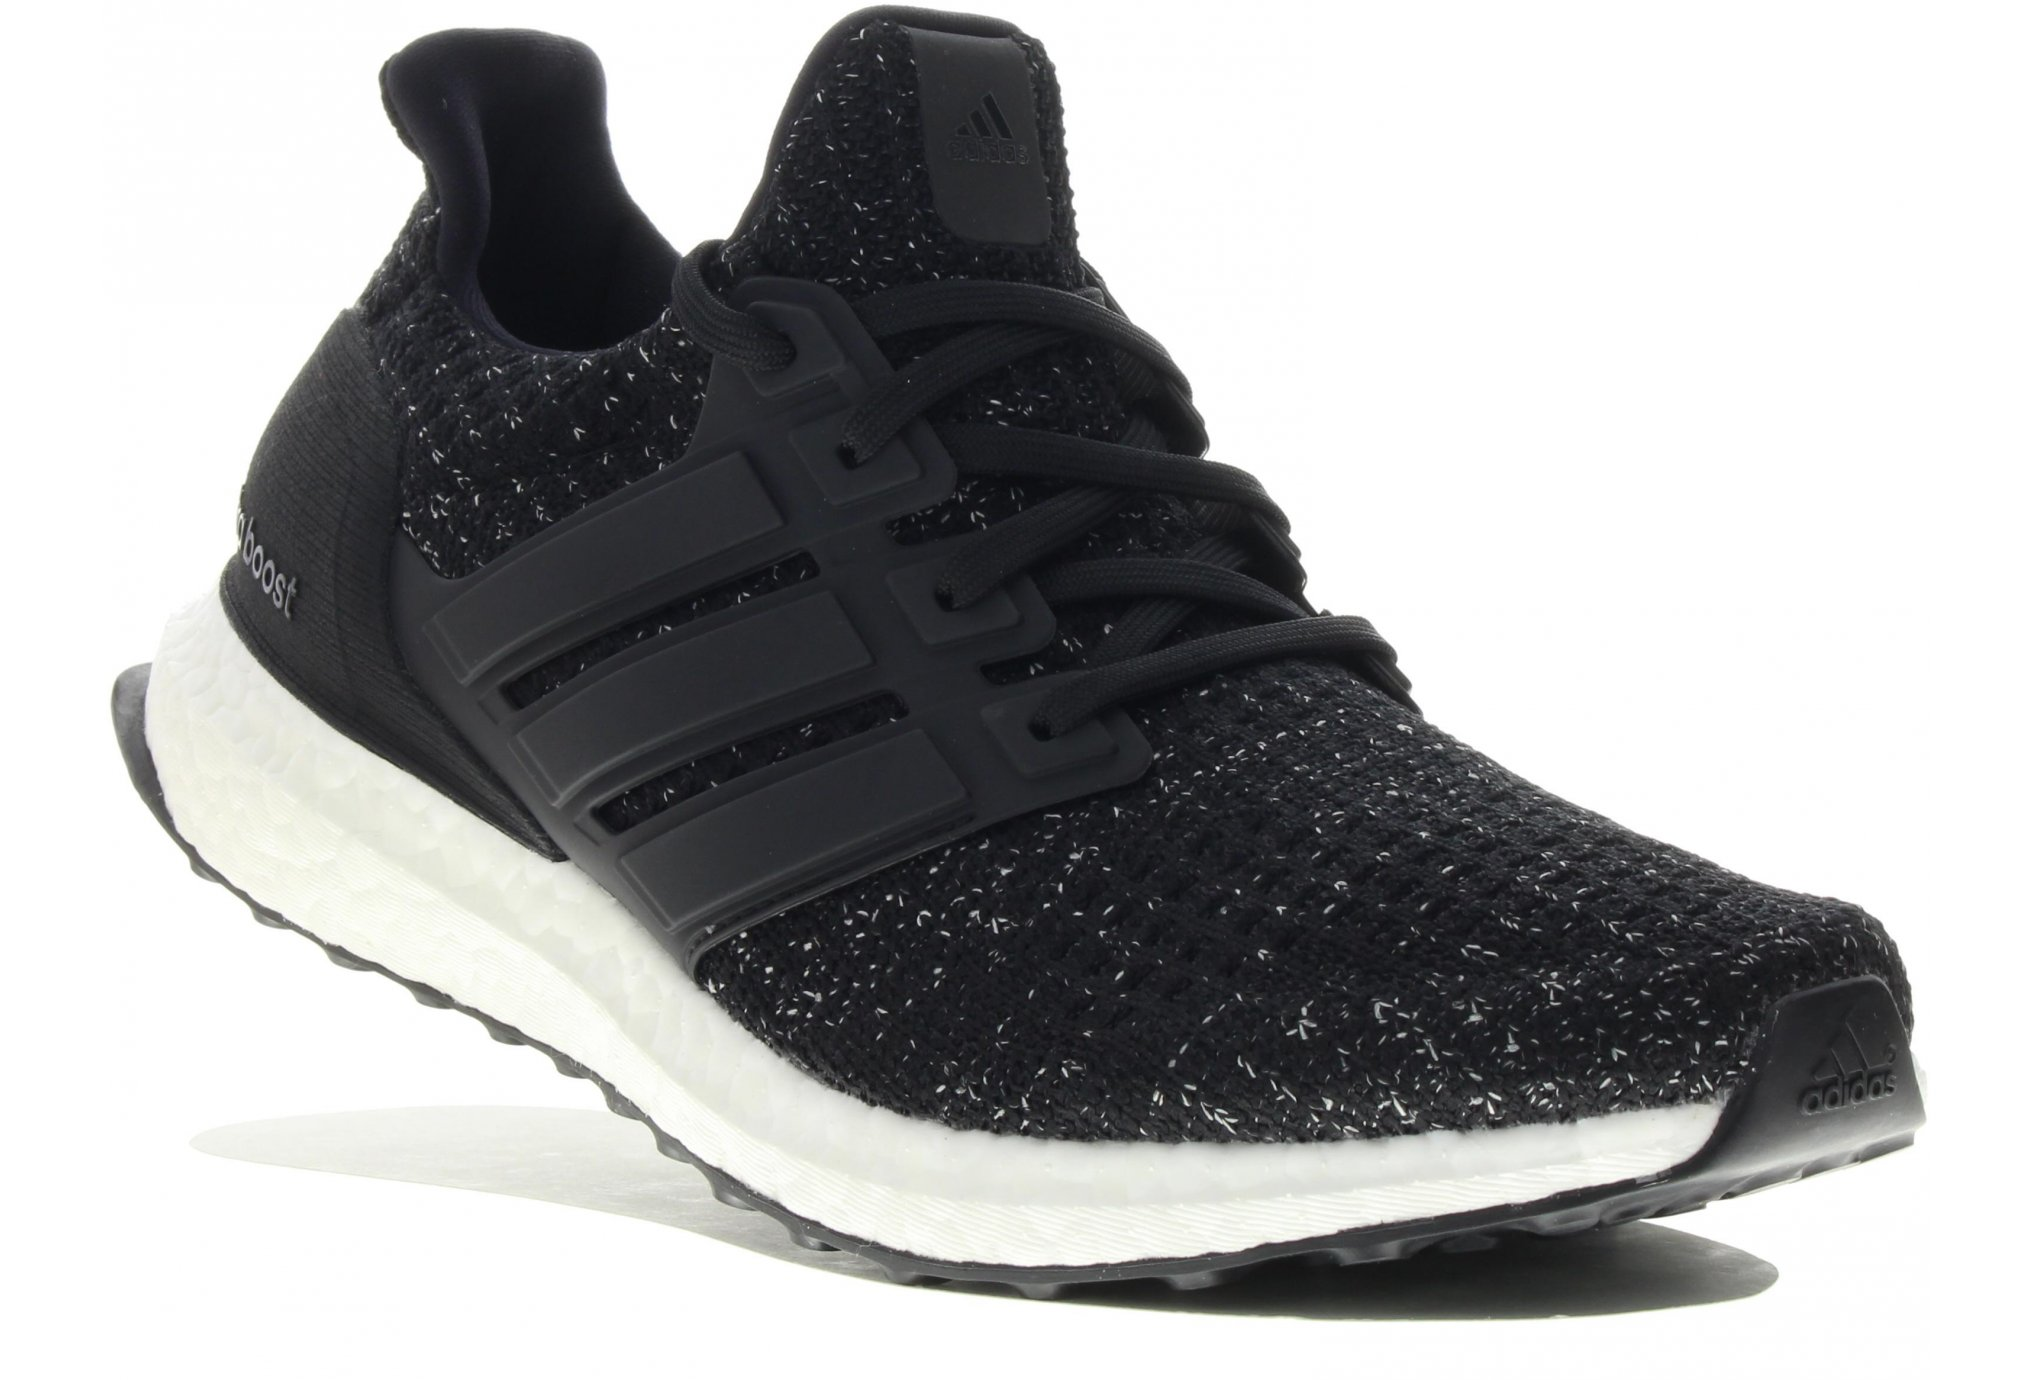 adidas Ultra Boost Chaussures homme